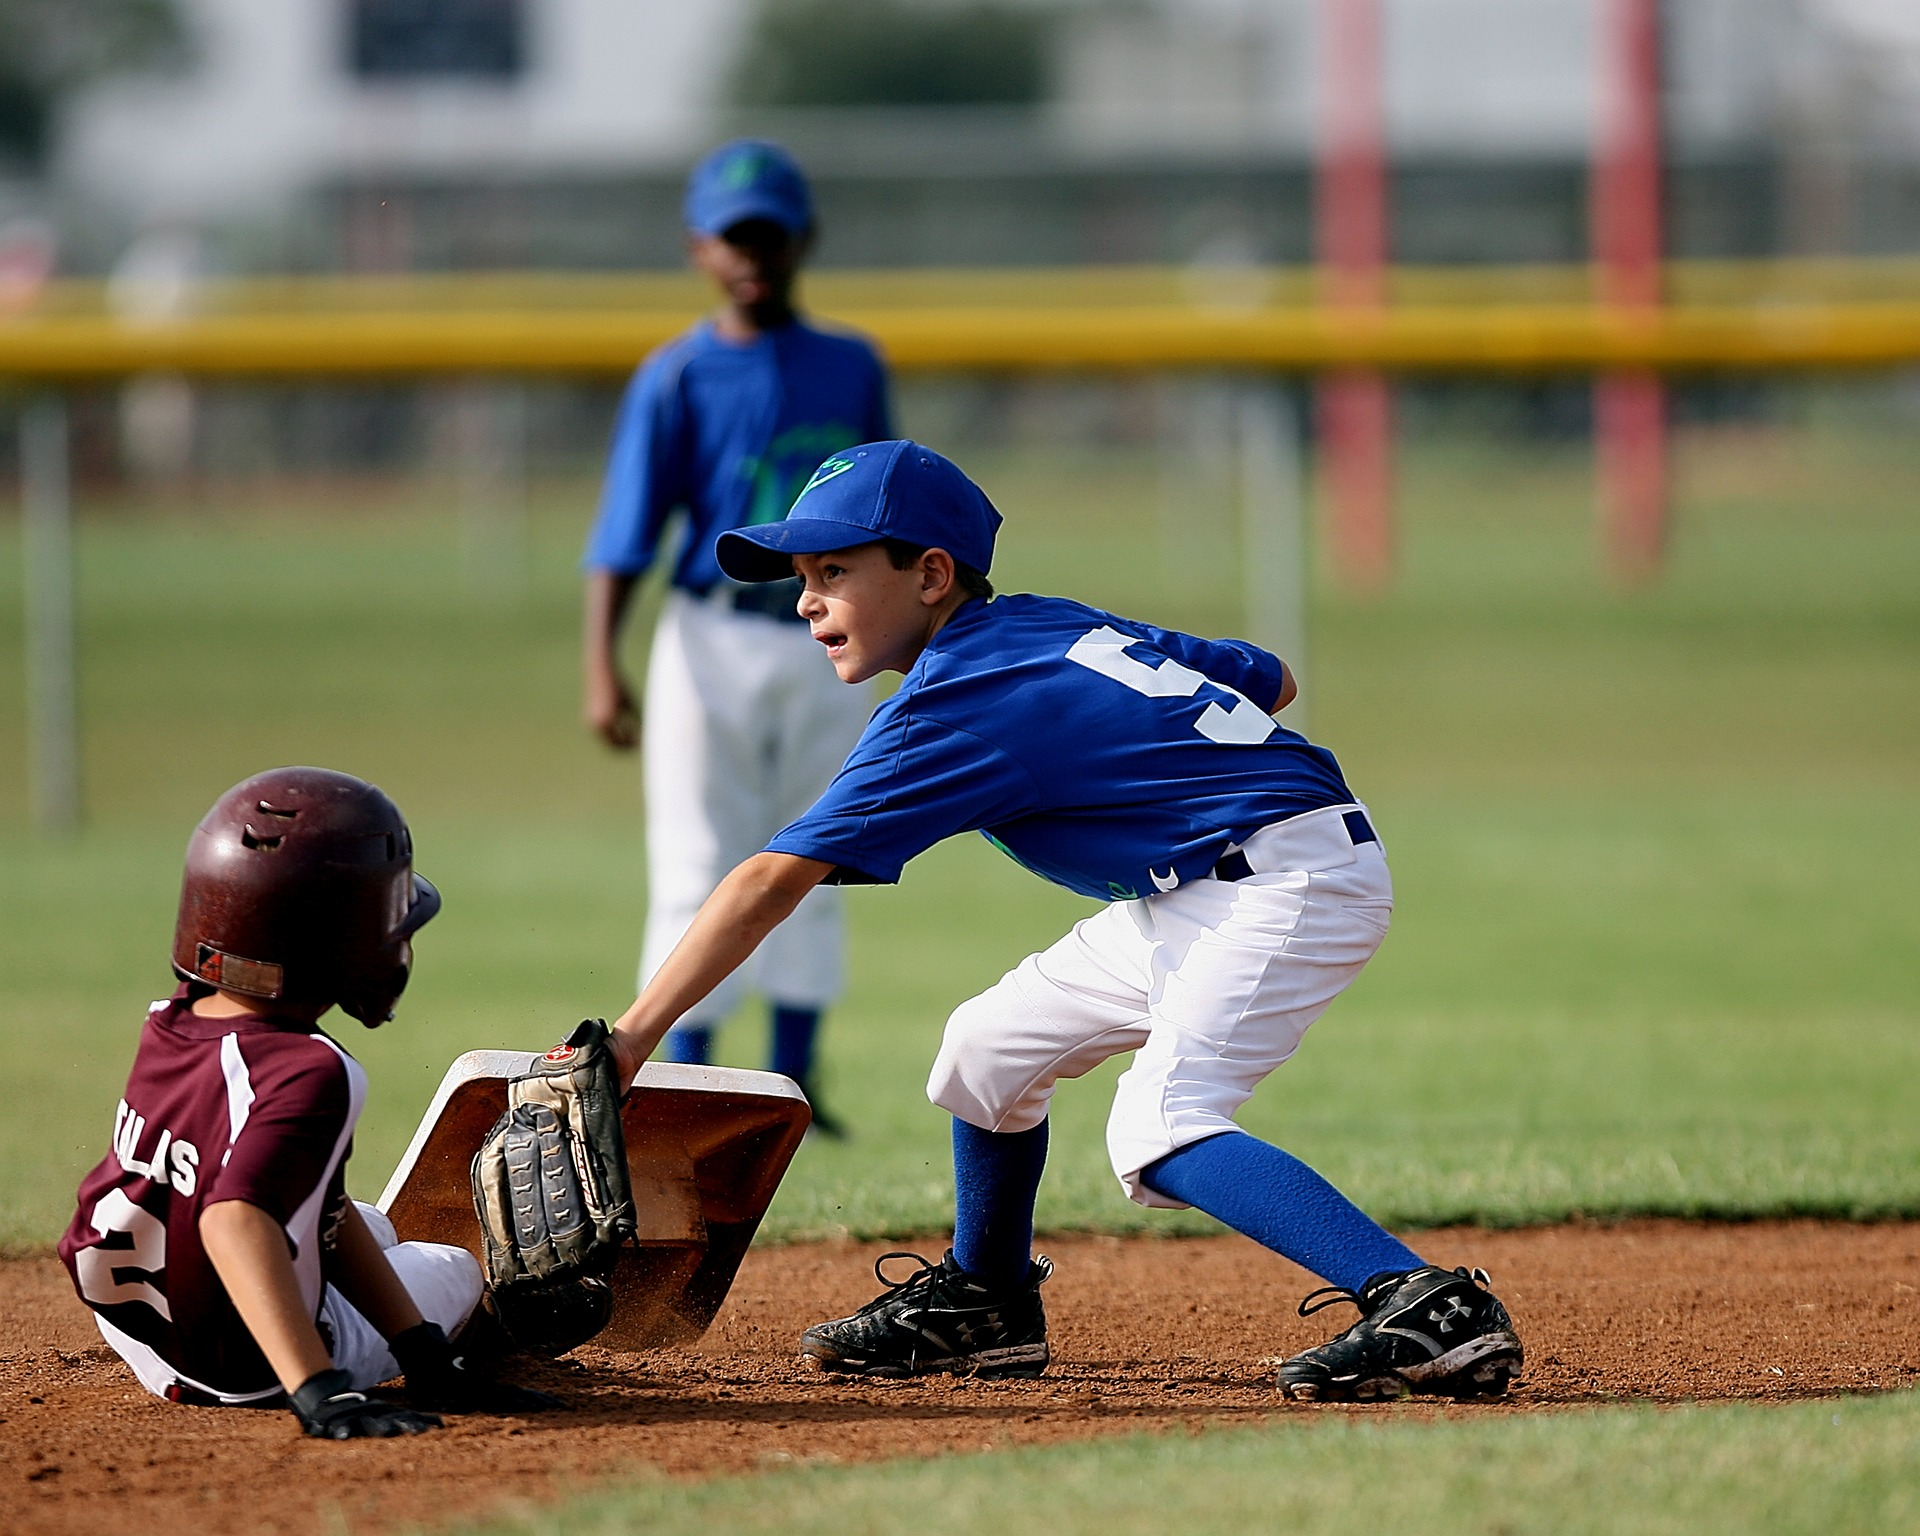 Little League baseball is a rite of passage